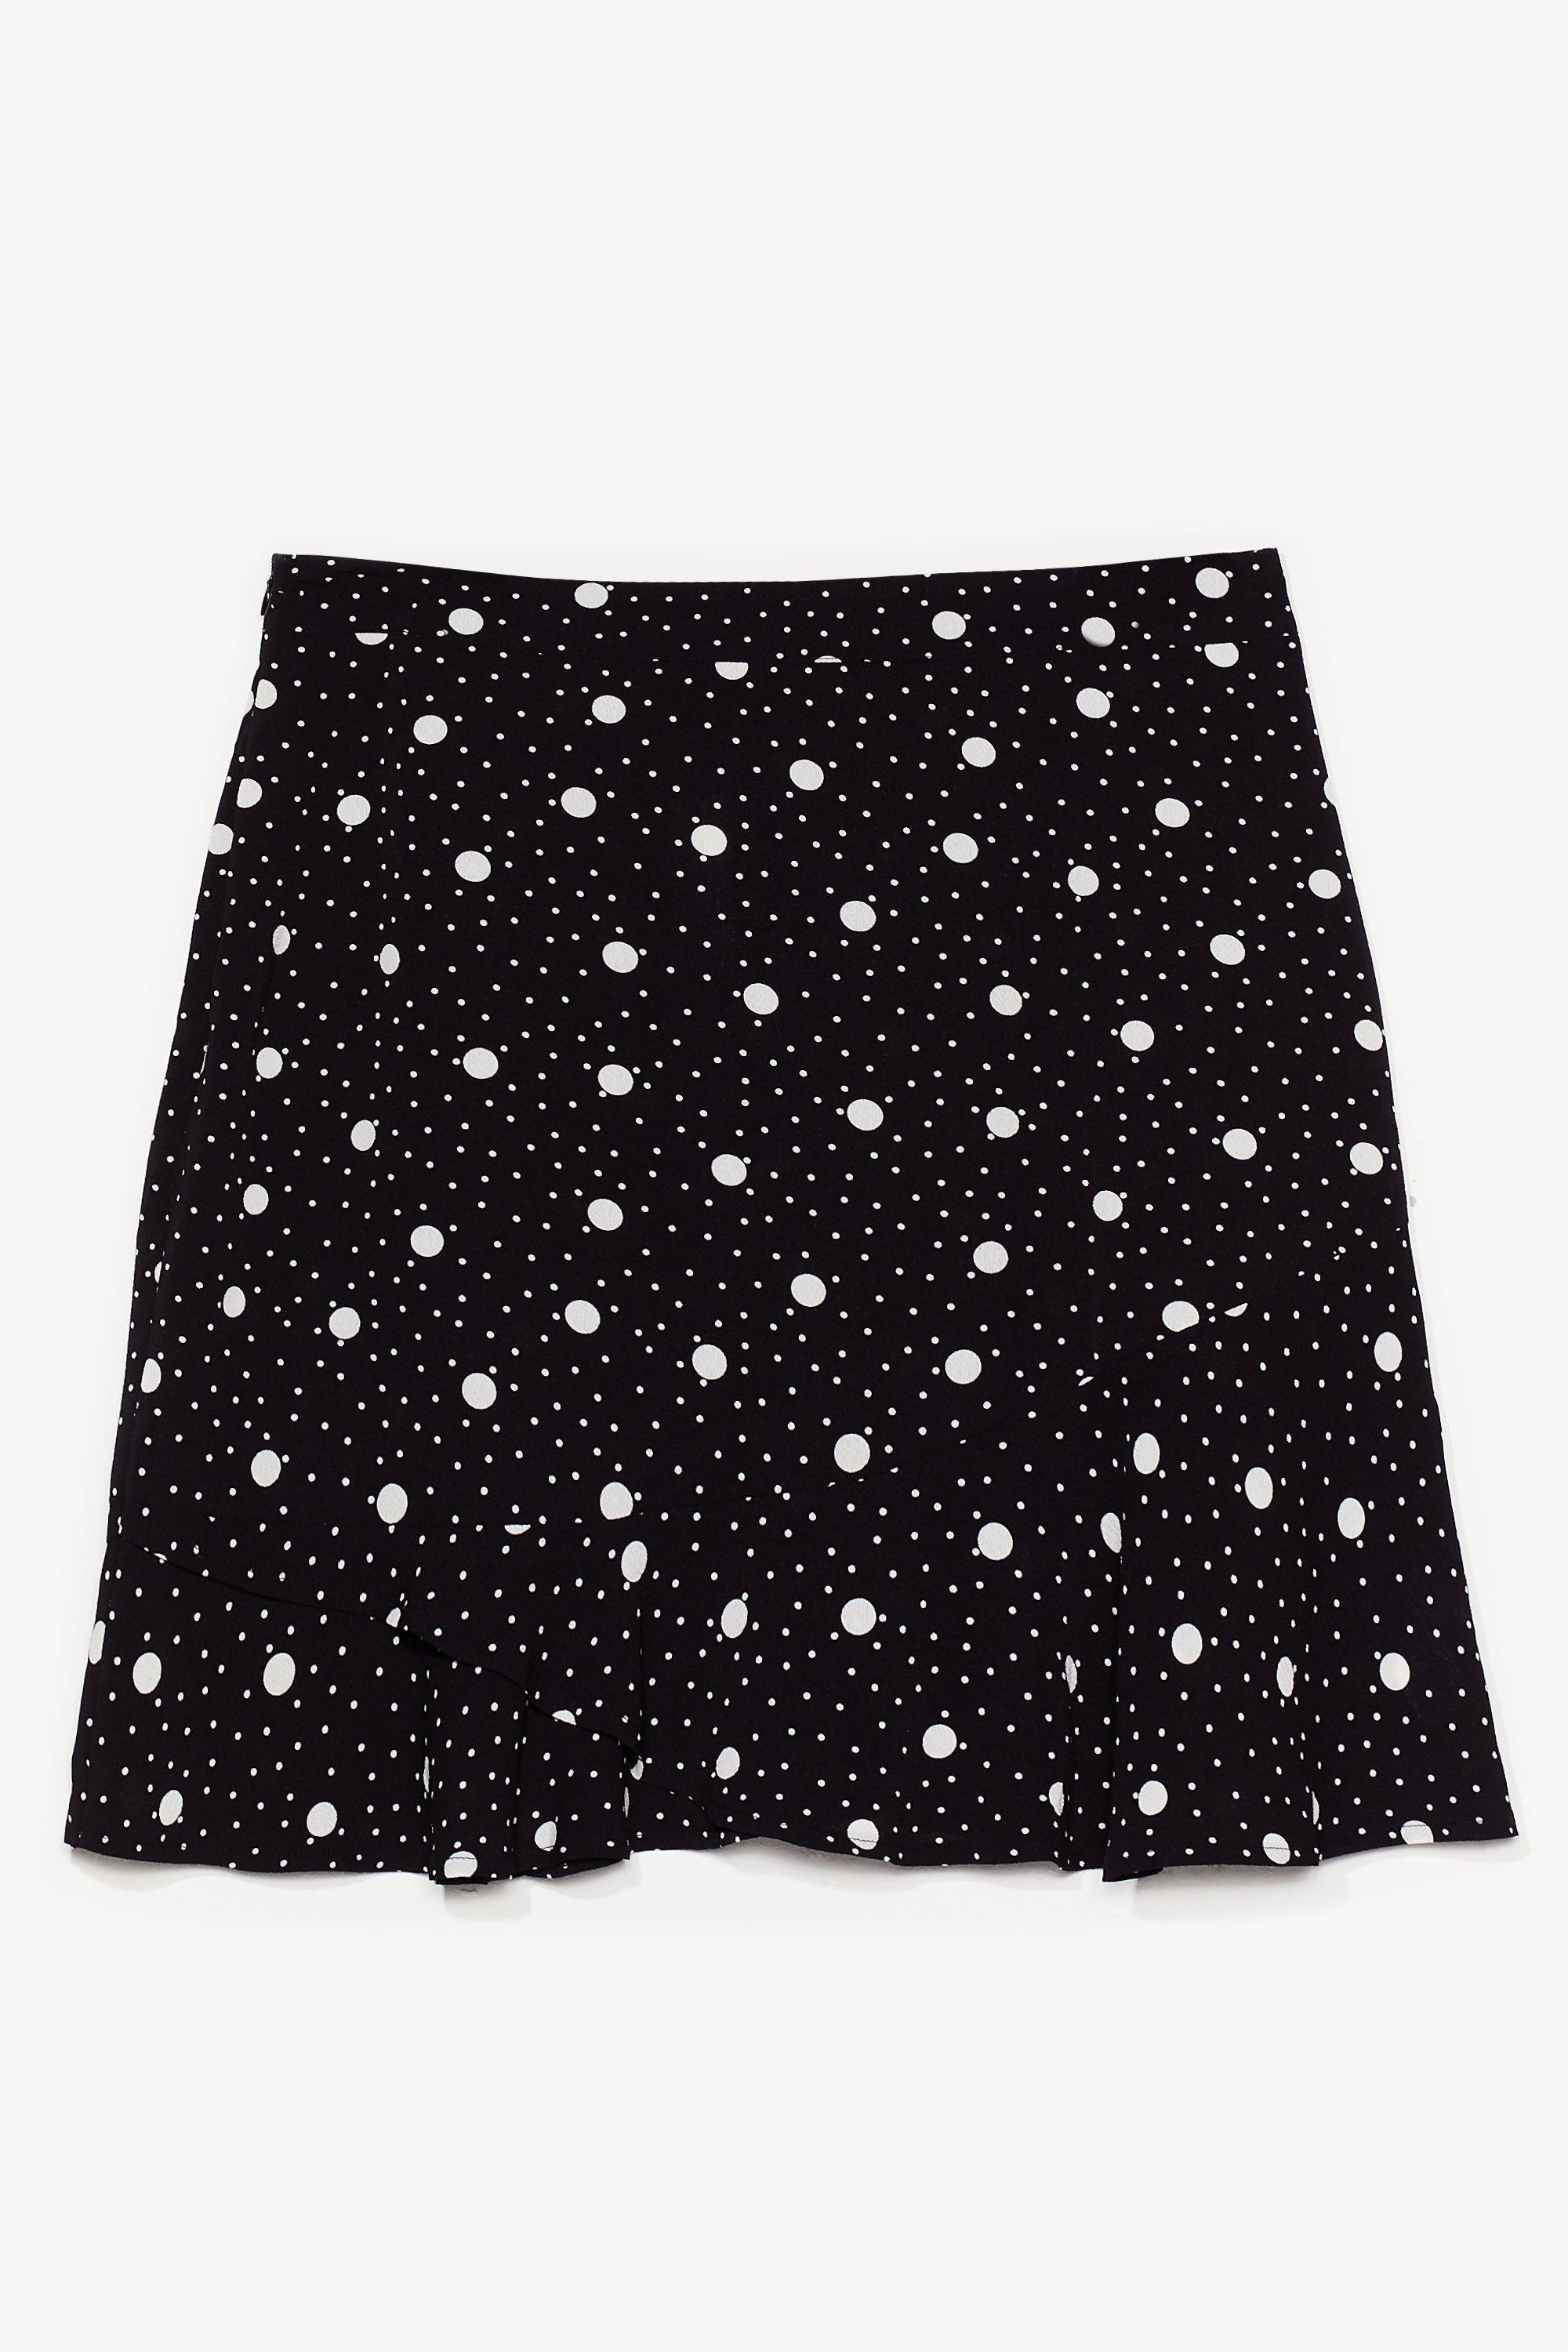 It's Polka Dot Easy Plus Mini Skirt 15